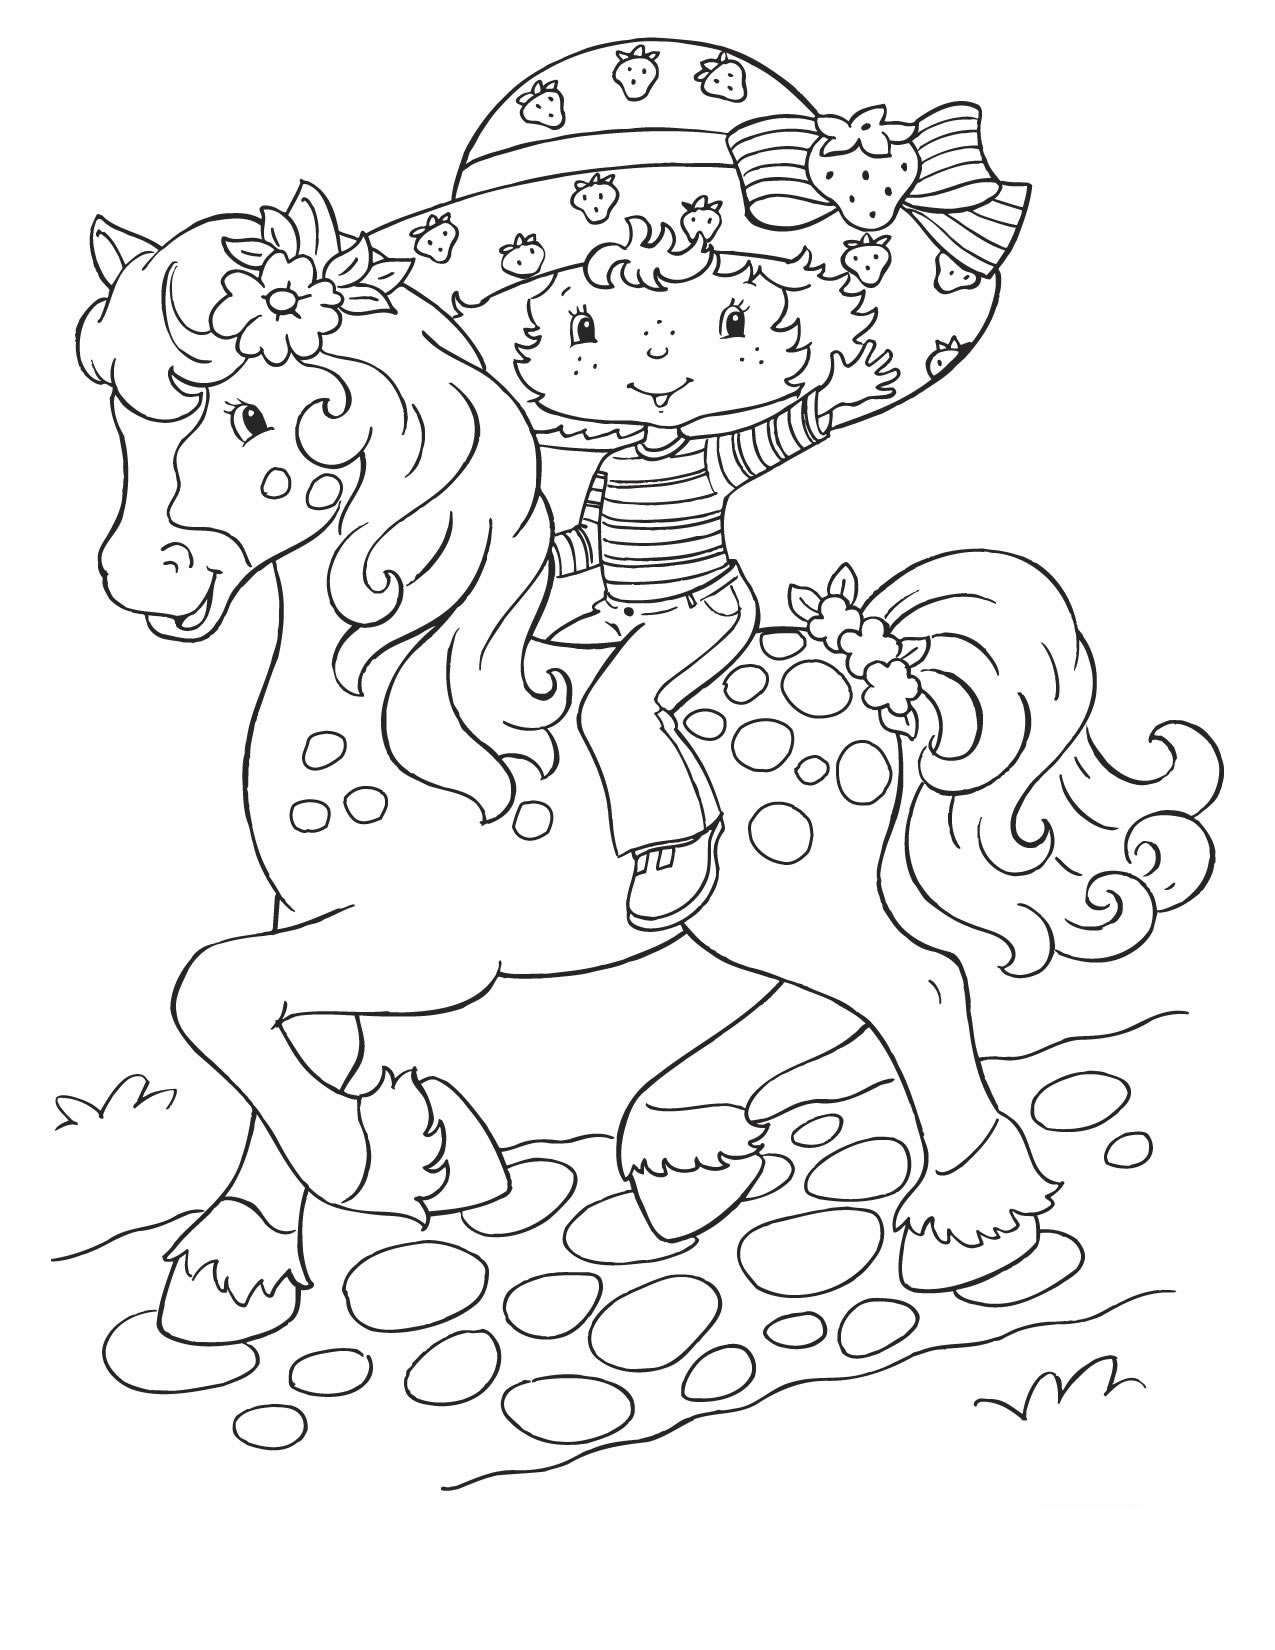 strawberry shortcake coloring pages online - photo#4